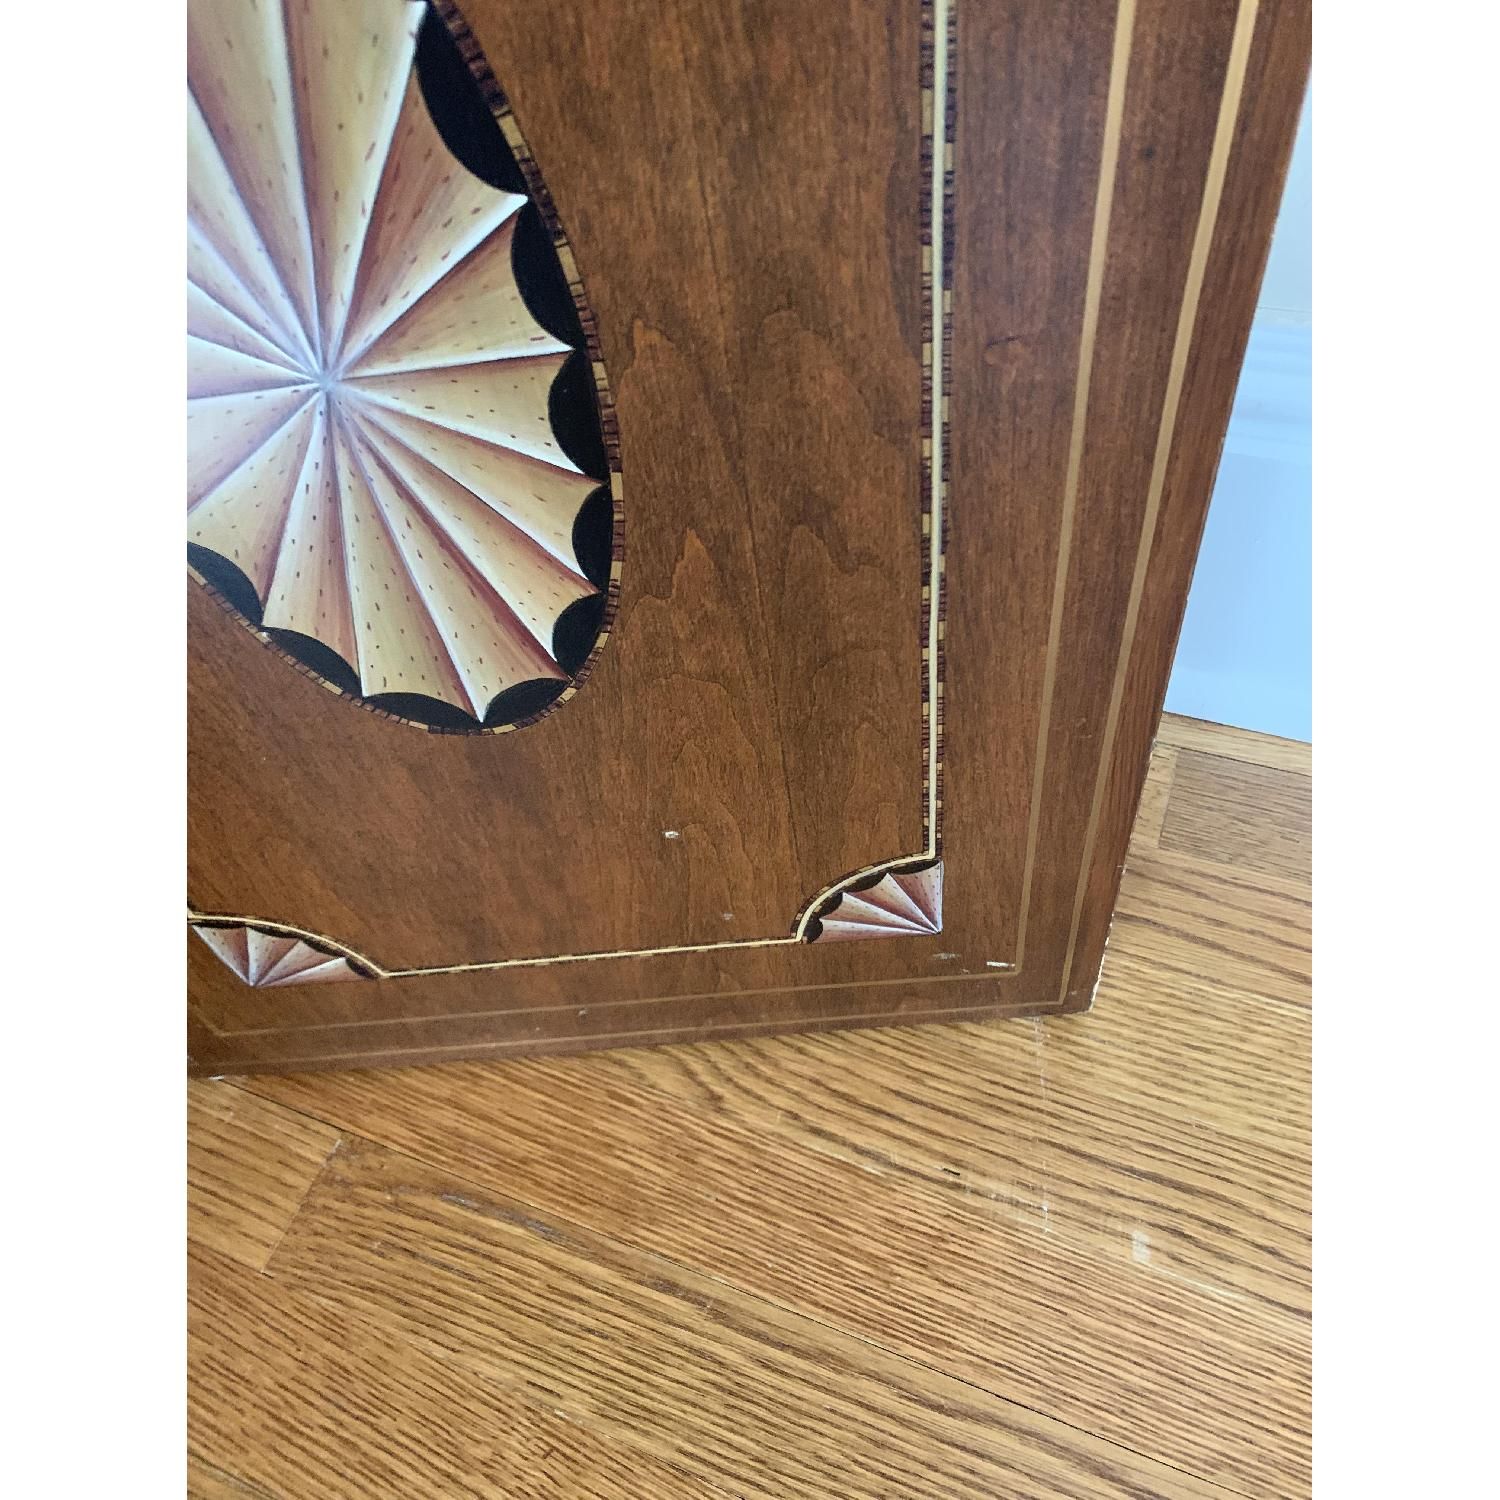 Maitland-Smith Tooled Leather Book Room Divider - image-2